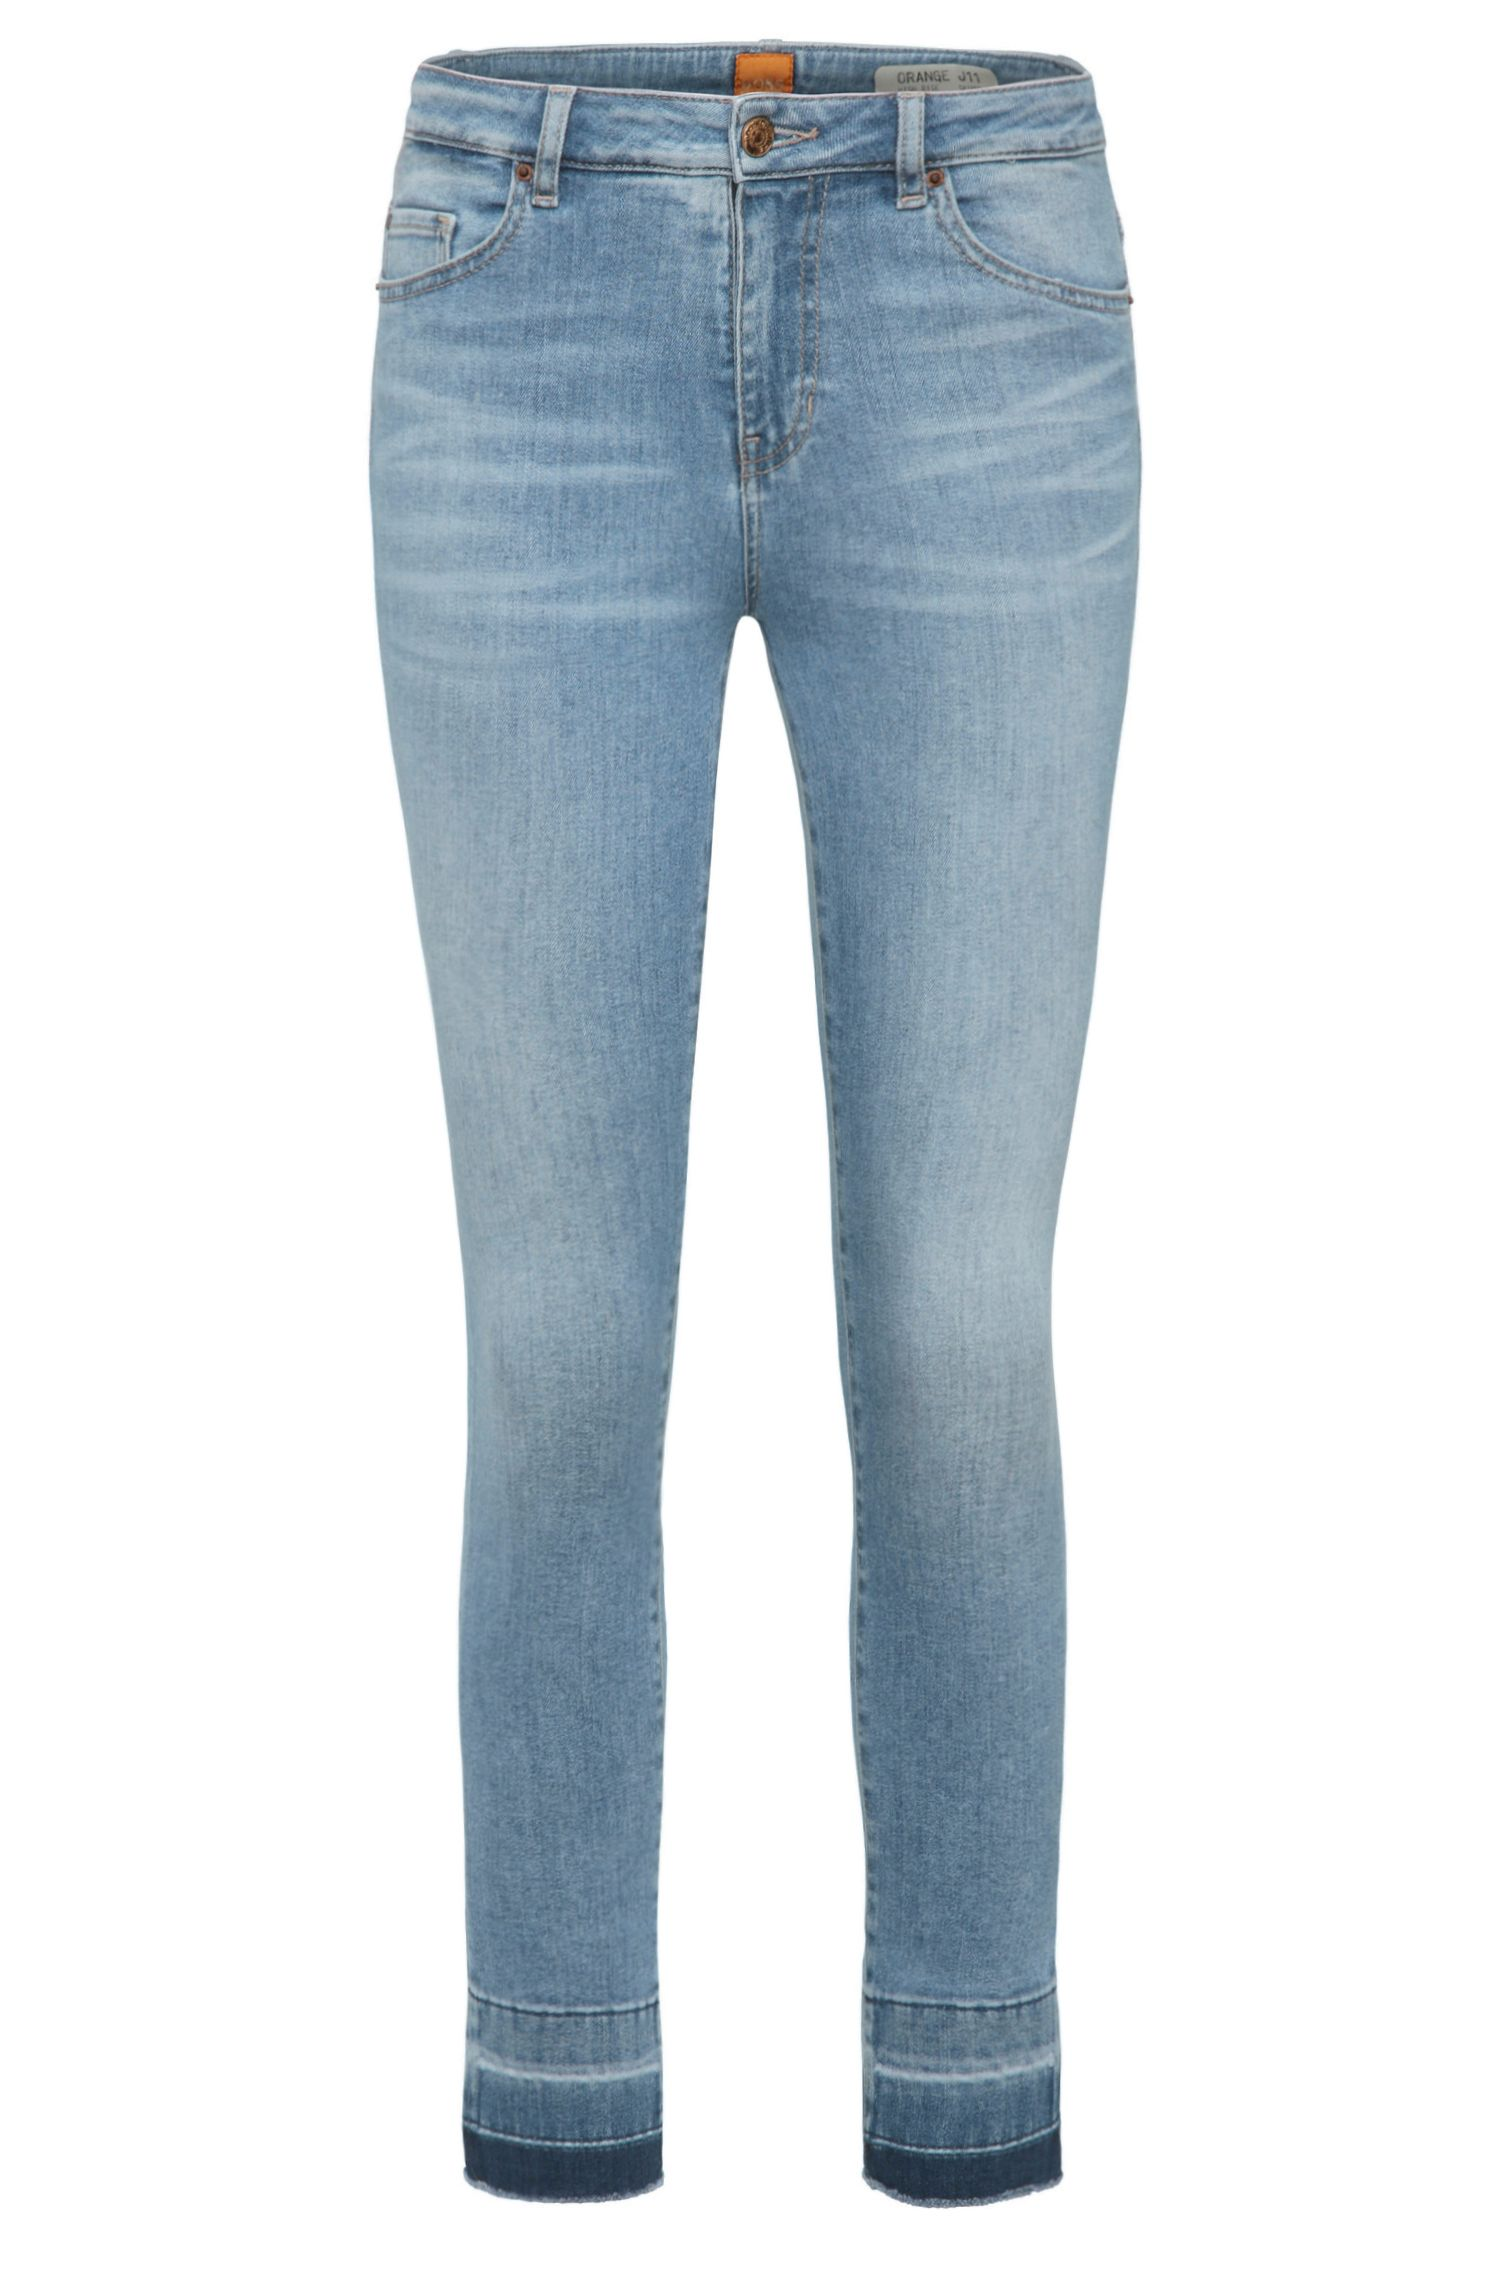 Skinny-Fit Jeans aus elastischem Baumwoll-Mix in Used-Optik: ´Orange J11 Mariposa`